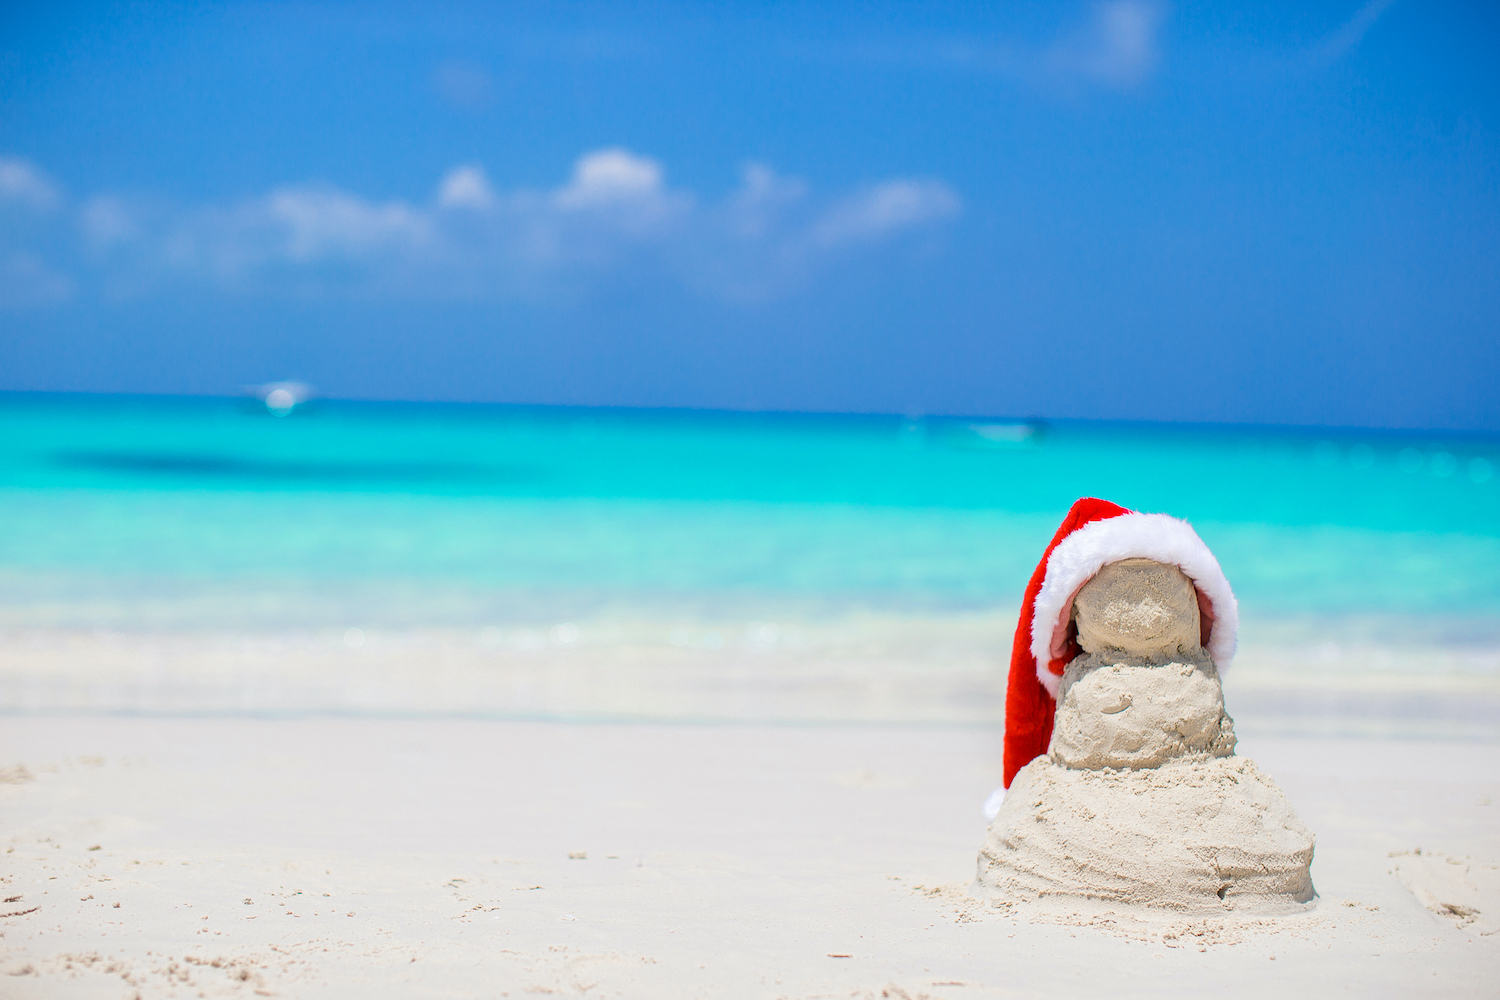 Little sandy snowman with red Santa Hat on white beach